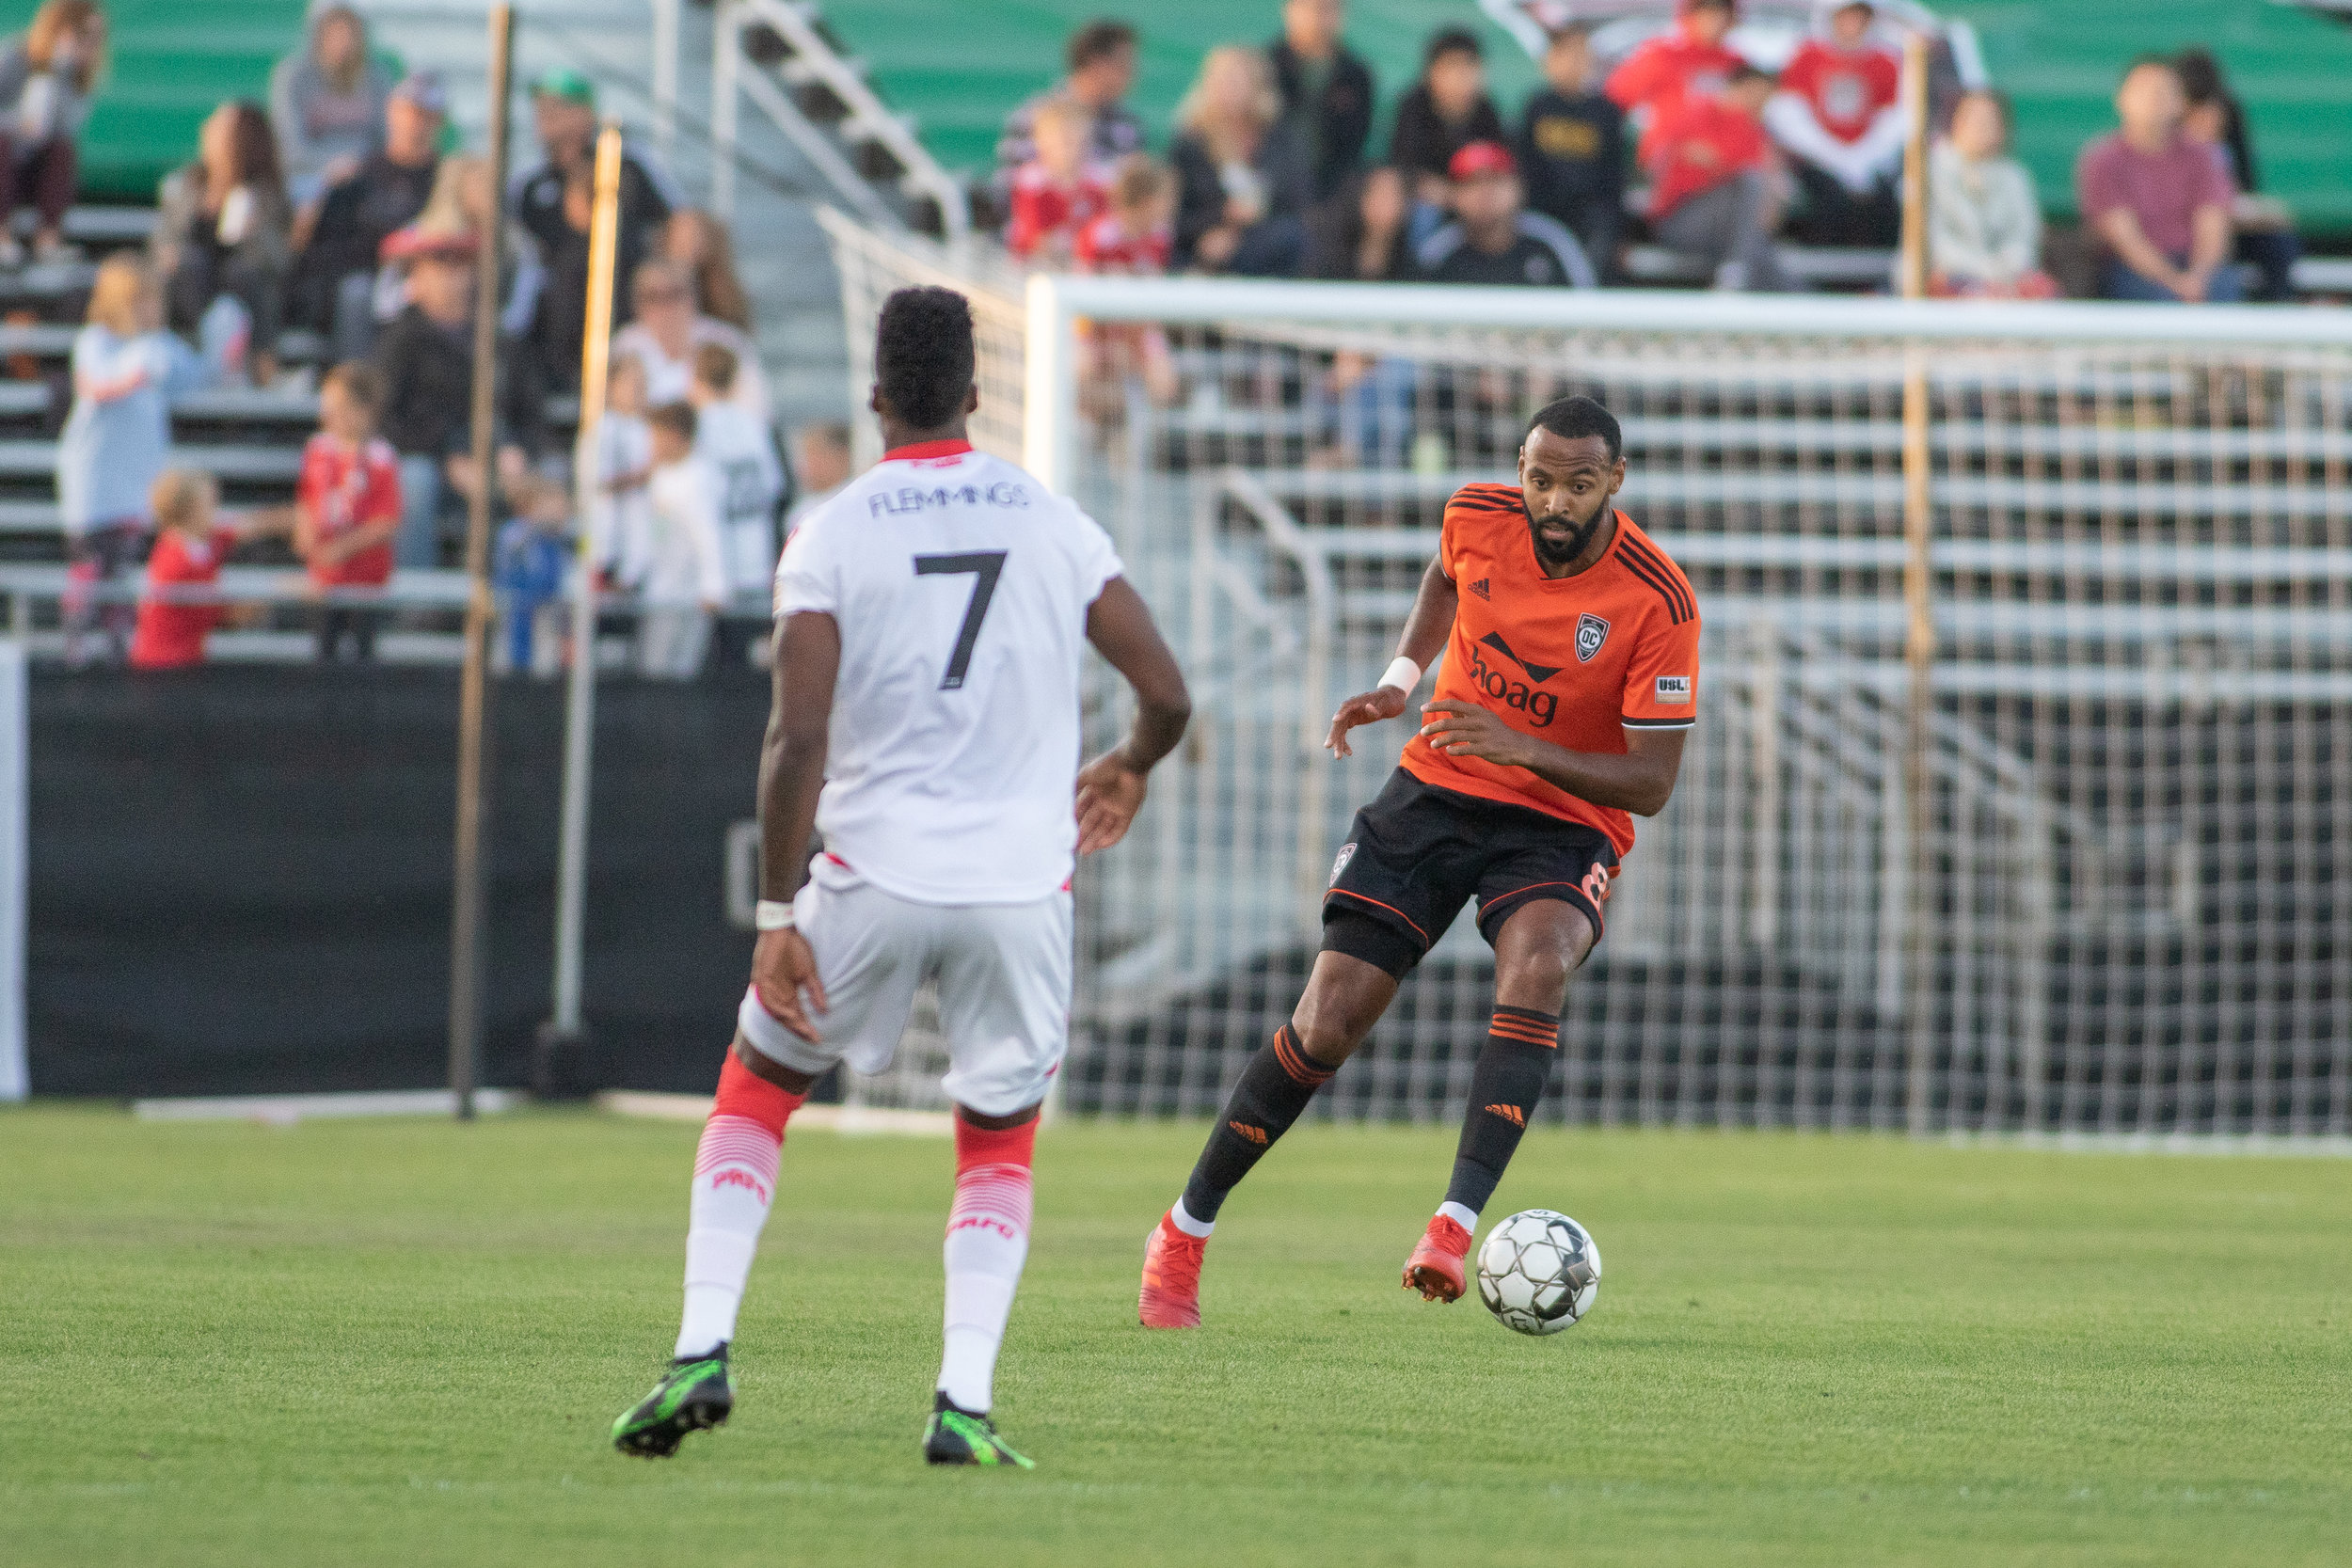 Trotter, right, on the ball in the OC half against Phoenix Rising FC on May 4, 2019.  Photo courtesy of Liza Rosales/ Orange County SC.